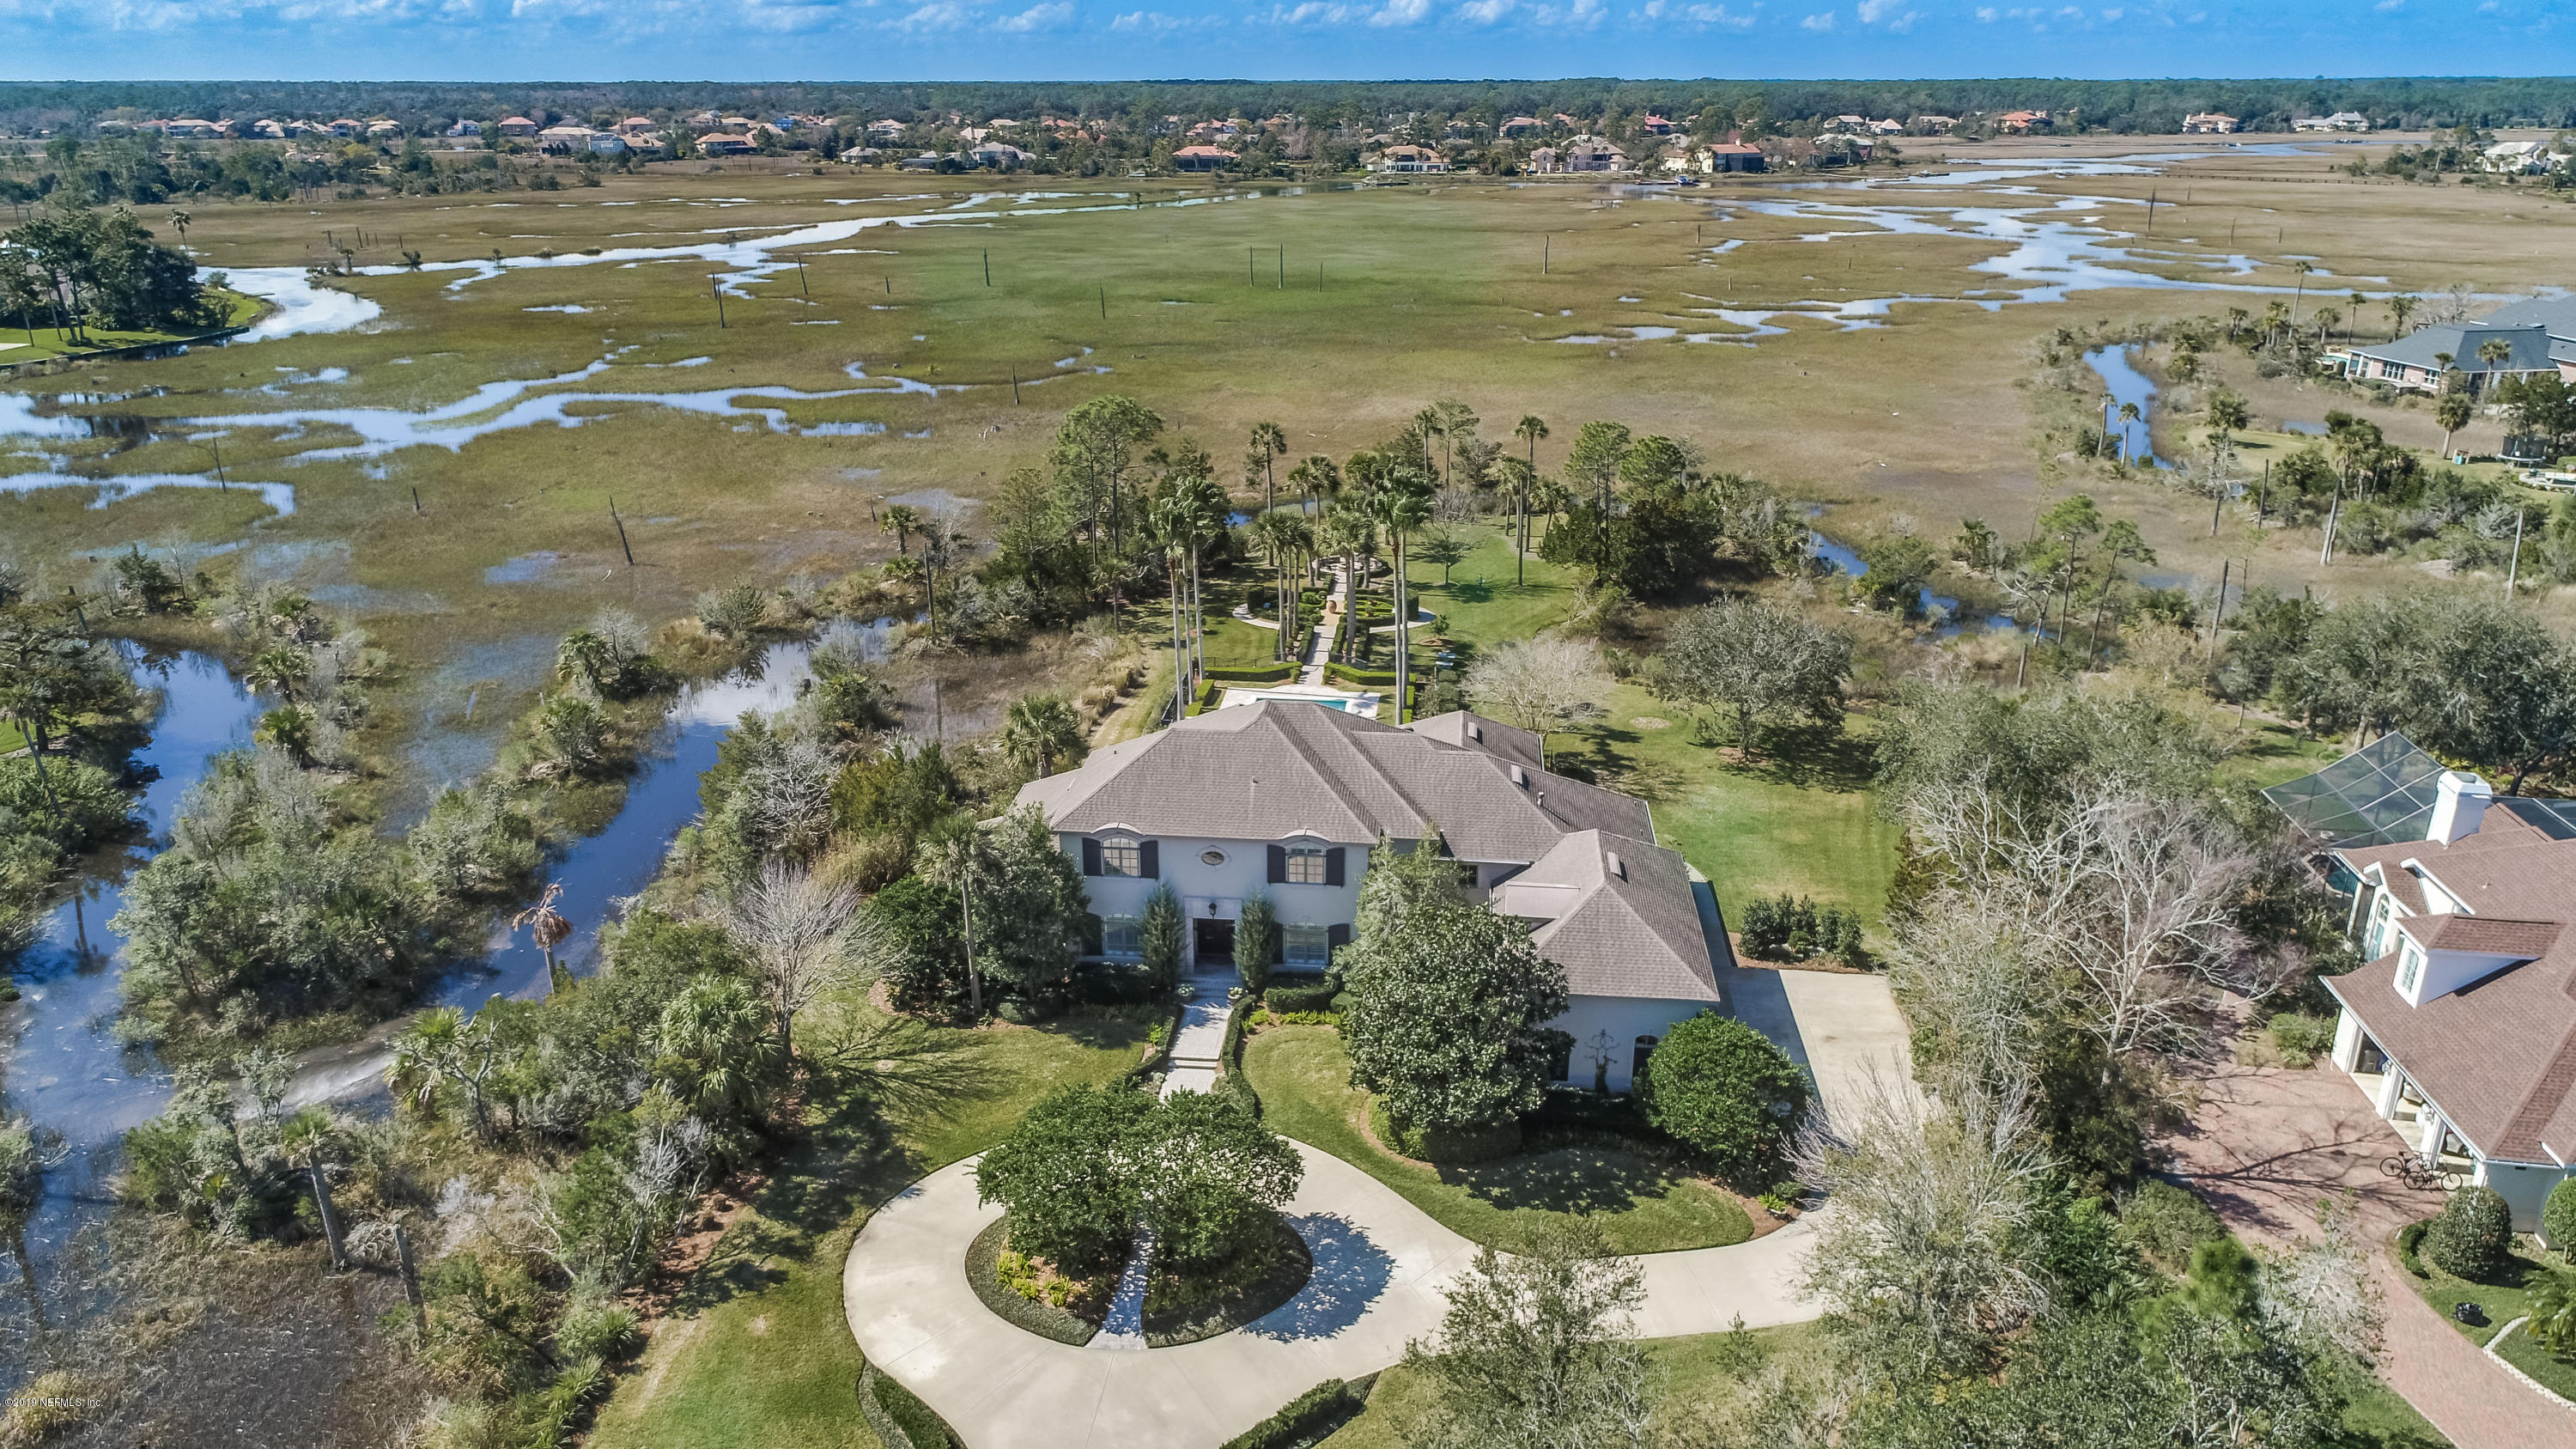 7545 FOUNDERS, PONTE VEDRA BEACH, FLORIDA 32082, 5 Bedrooms Bedrooms, ,4 BathroomsBathrooms,Residential - single family,For sale,FOUNDERS,984256